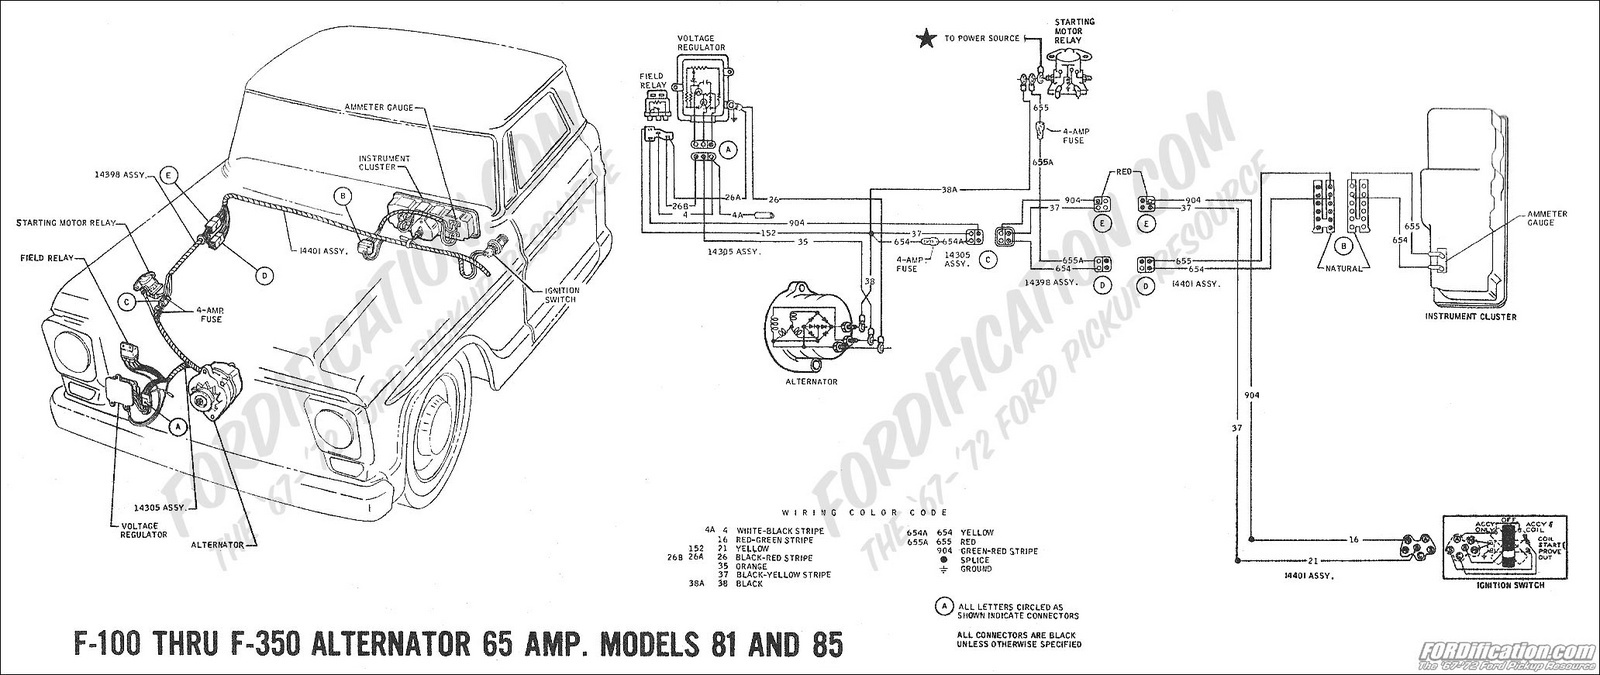 ford f 100 questions i have a 73 f 100 i have no power to the s rh cargurus com 2005 Ford F-250 Wiring Diagram 1992 Ford F-250 Wiring Diagram